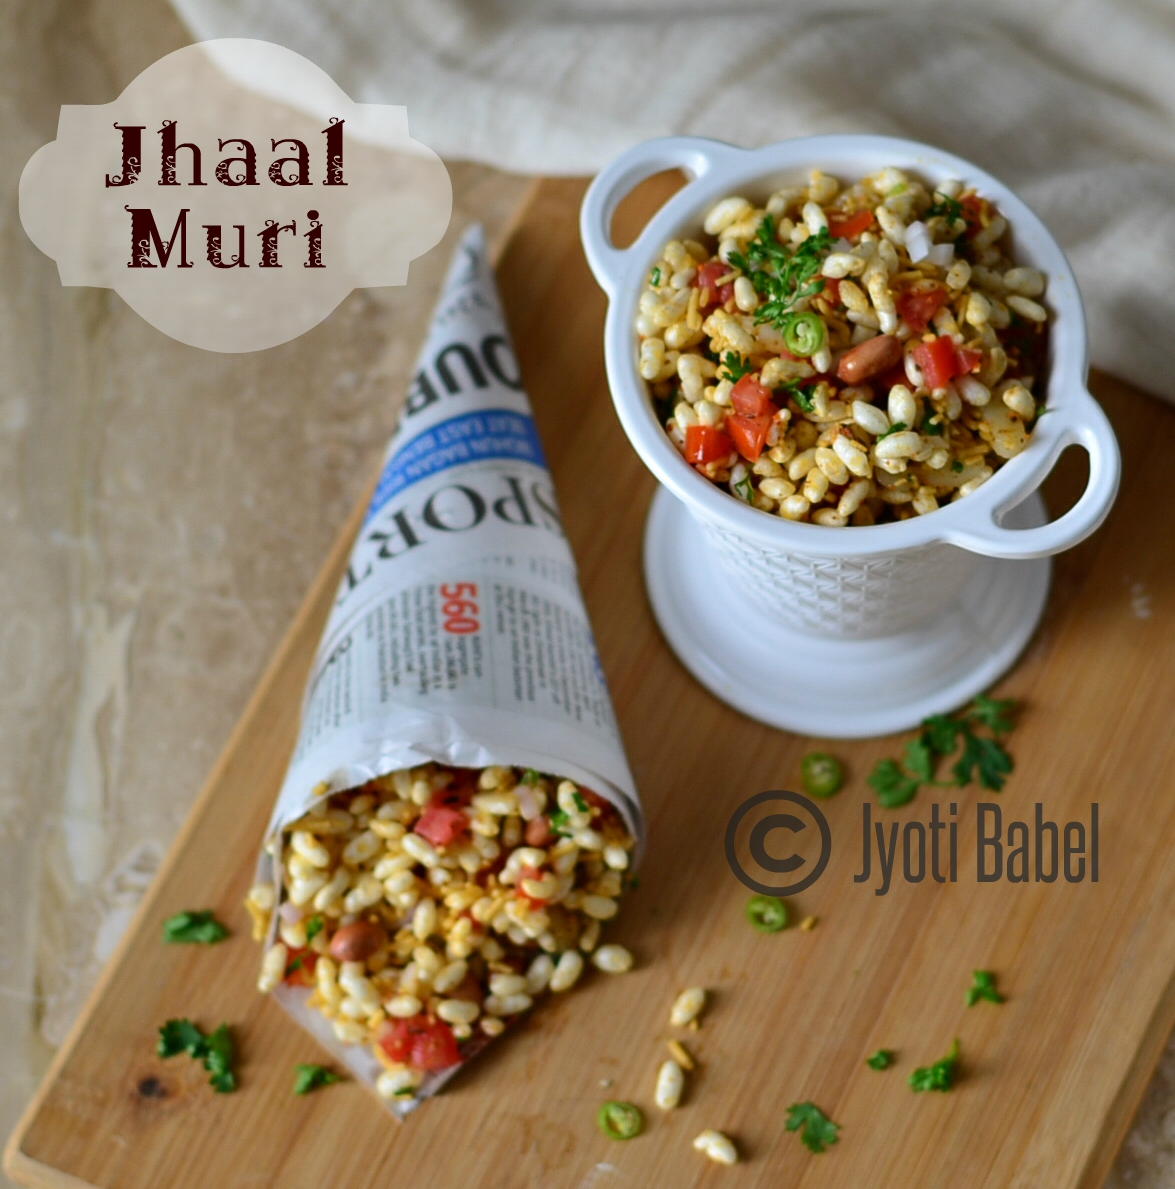 Jyotis pages jhaal muri how to make jhaal muri from scratch jhaal muri how to make jhaal muri from scratch street food recipes forumfinder Image collections